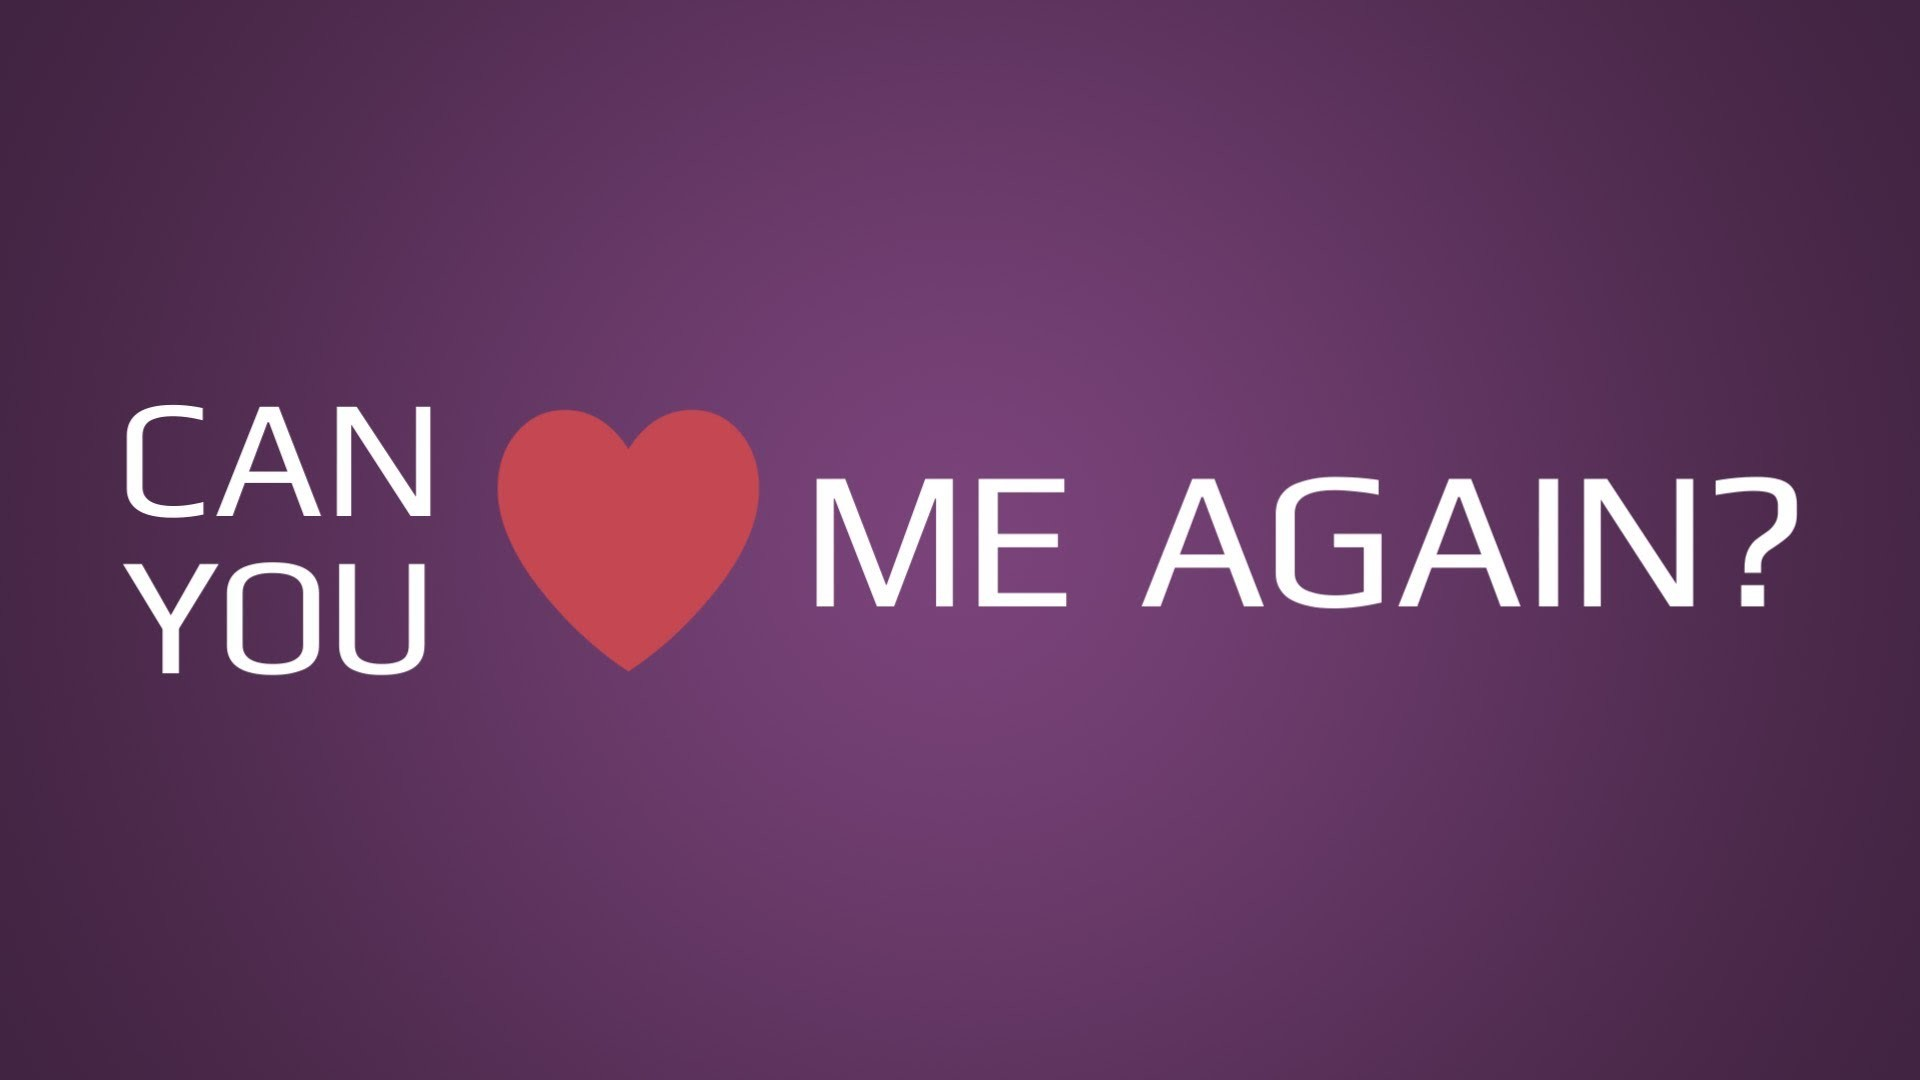 Can You Love Me Again